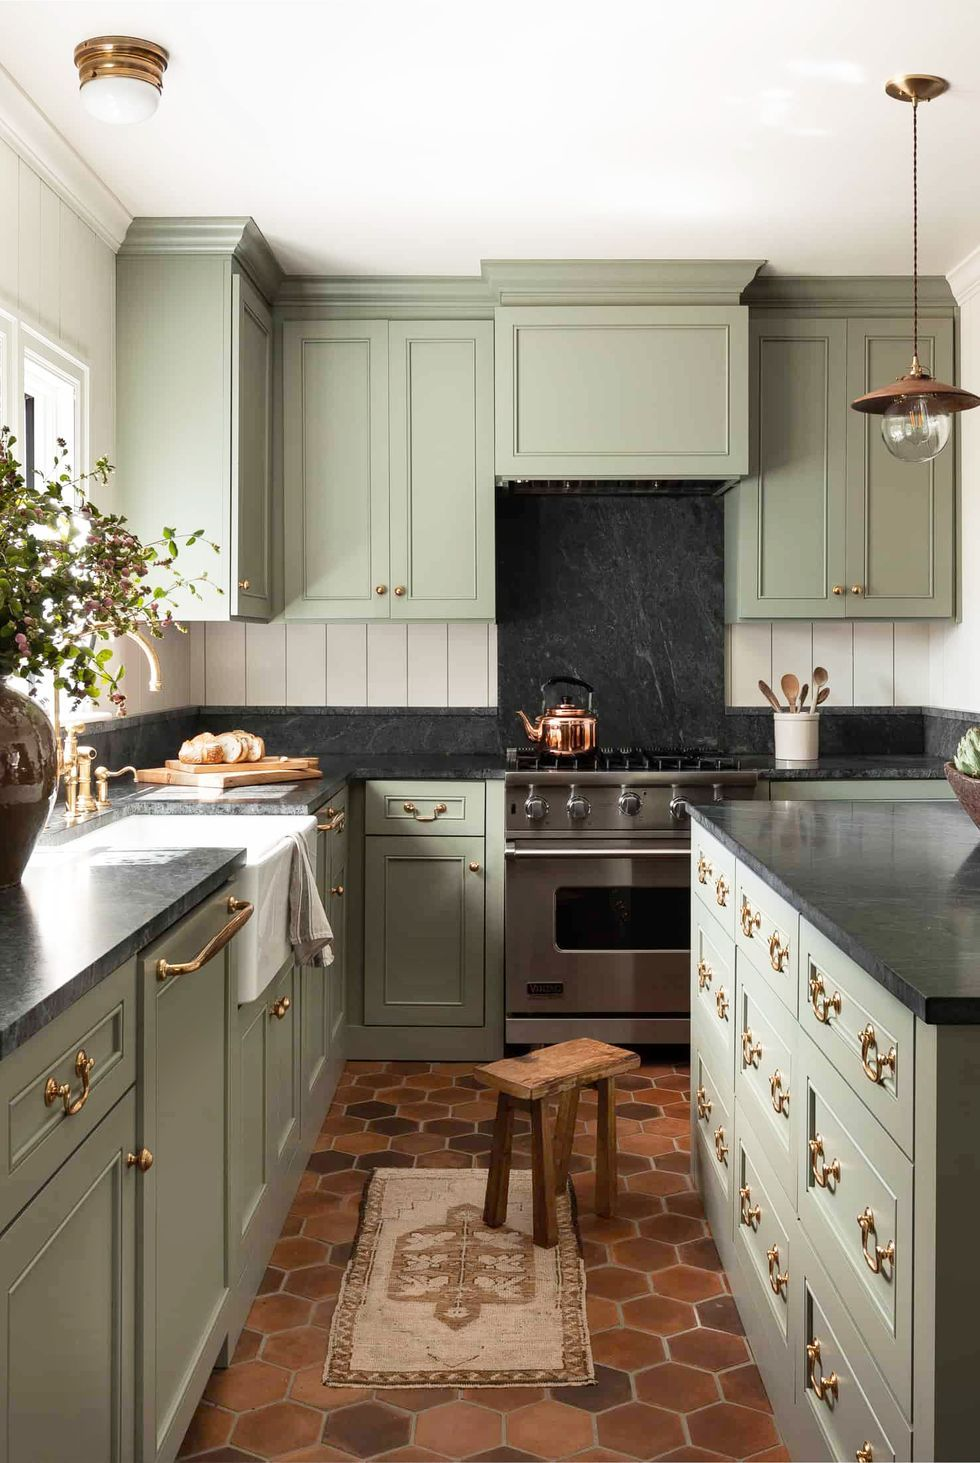 10 Different Kitchen Decoration Styles You Can Apply To Create A Cozy Atmosphere Talkdecor In 2020 Traditional Kitchen Island Kitchen Design Color Green Kitchen Cabinets